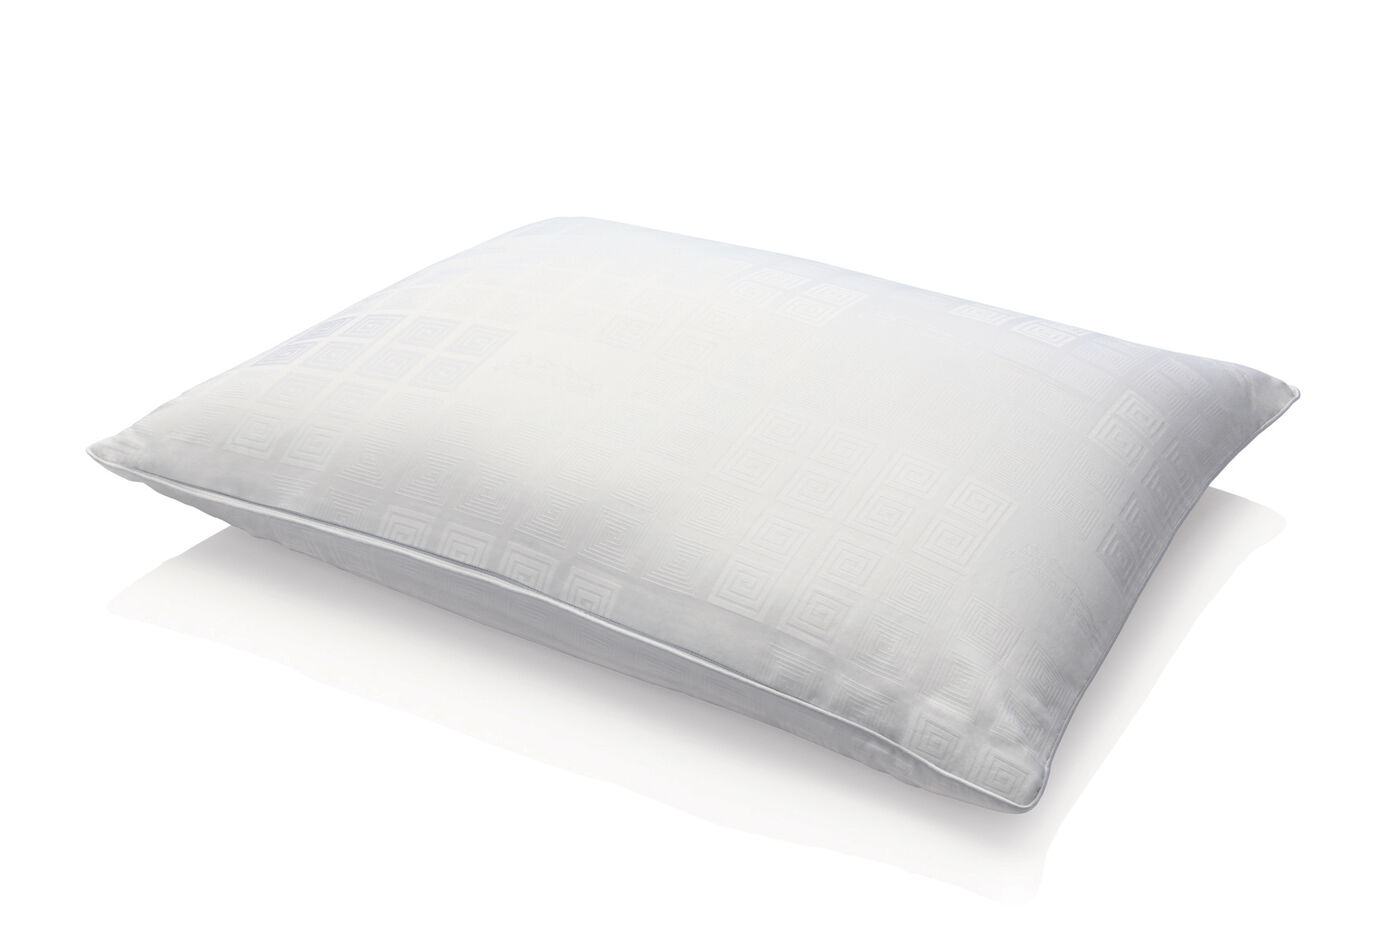 Tempur Traditional Pillow Travel : Tempur-Pedic TEMPUR-Traditional Pillow Mathis Brothers Furniture